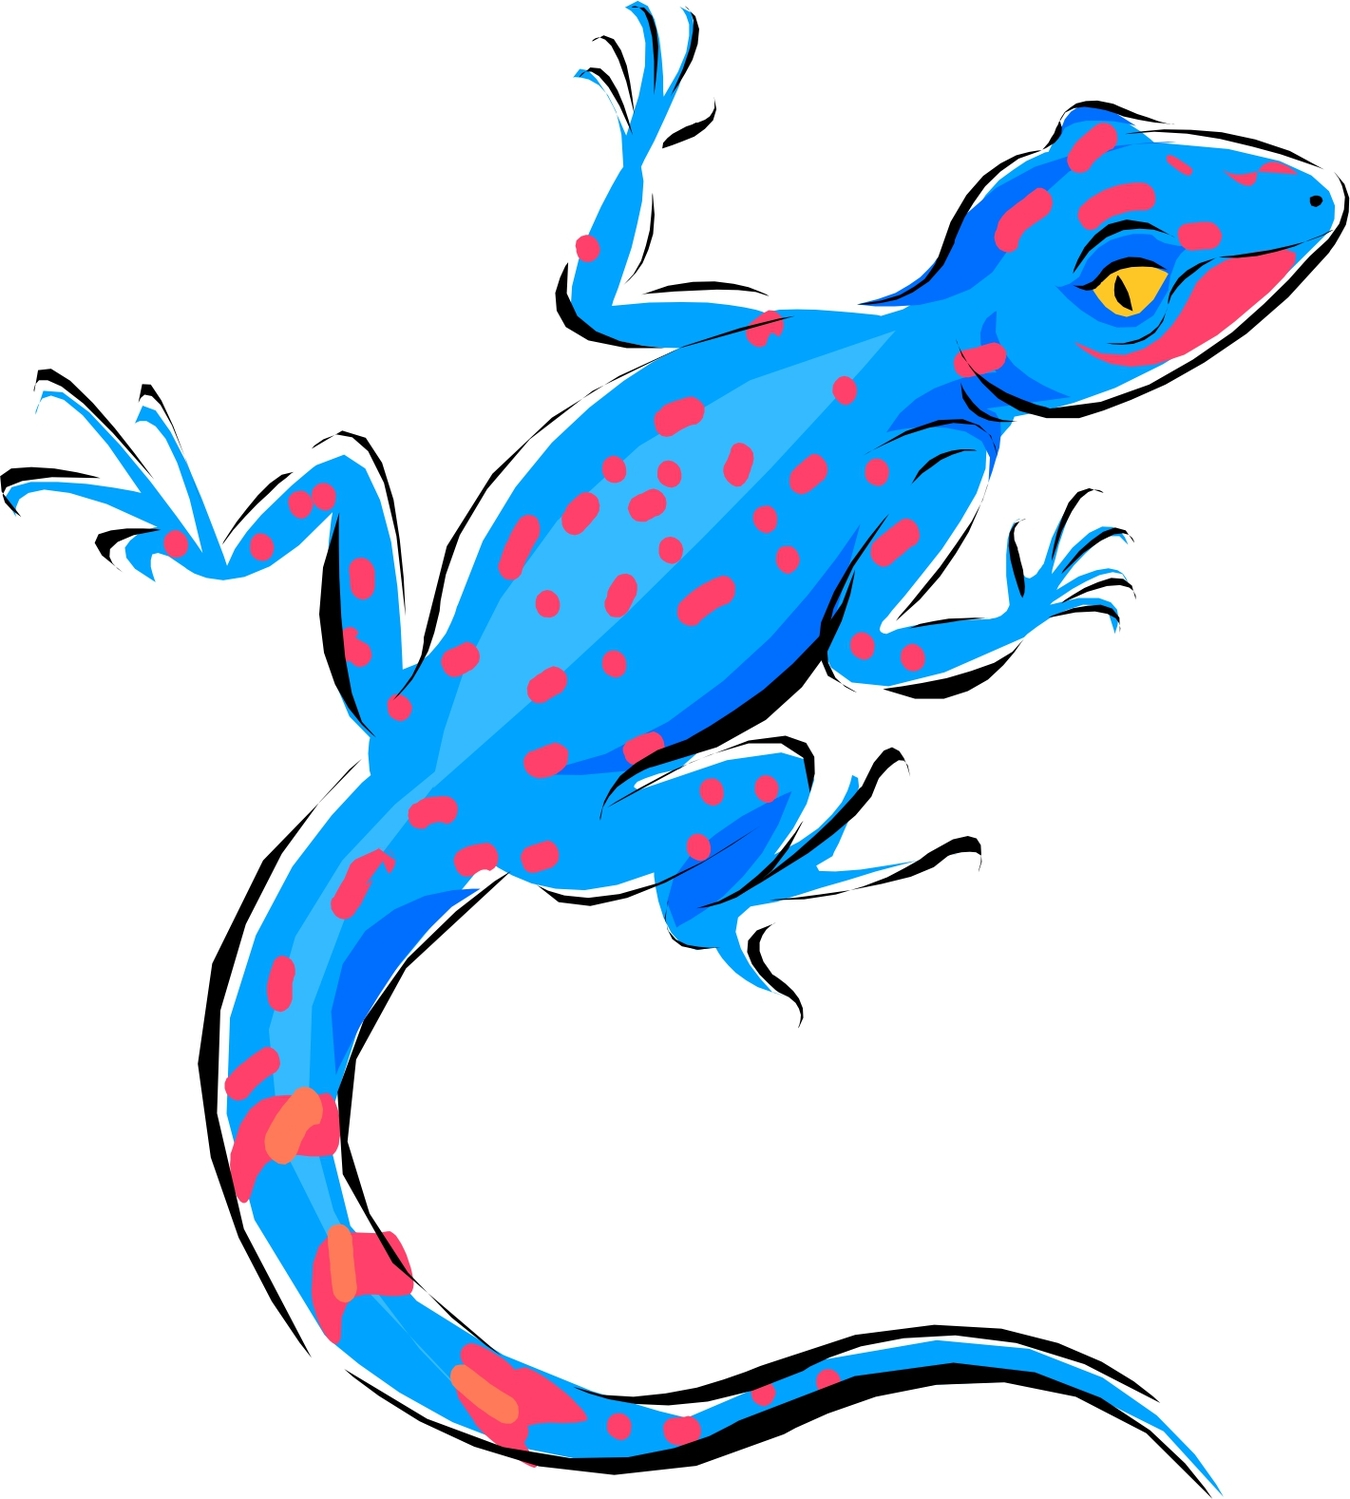 Pictures Of Cartoon Lizards | Free download best Pictures Of ... for Cute Lizard Clipart  66plt